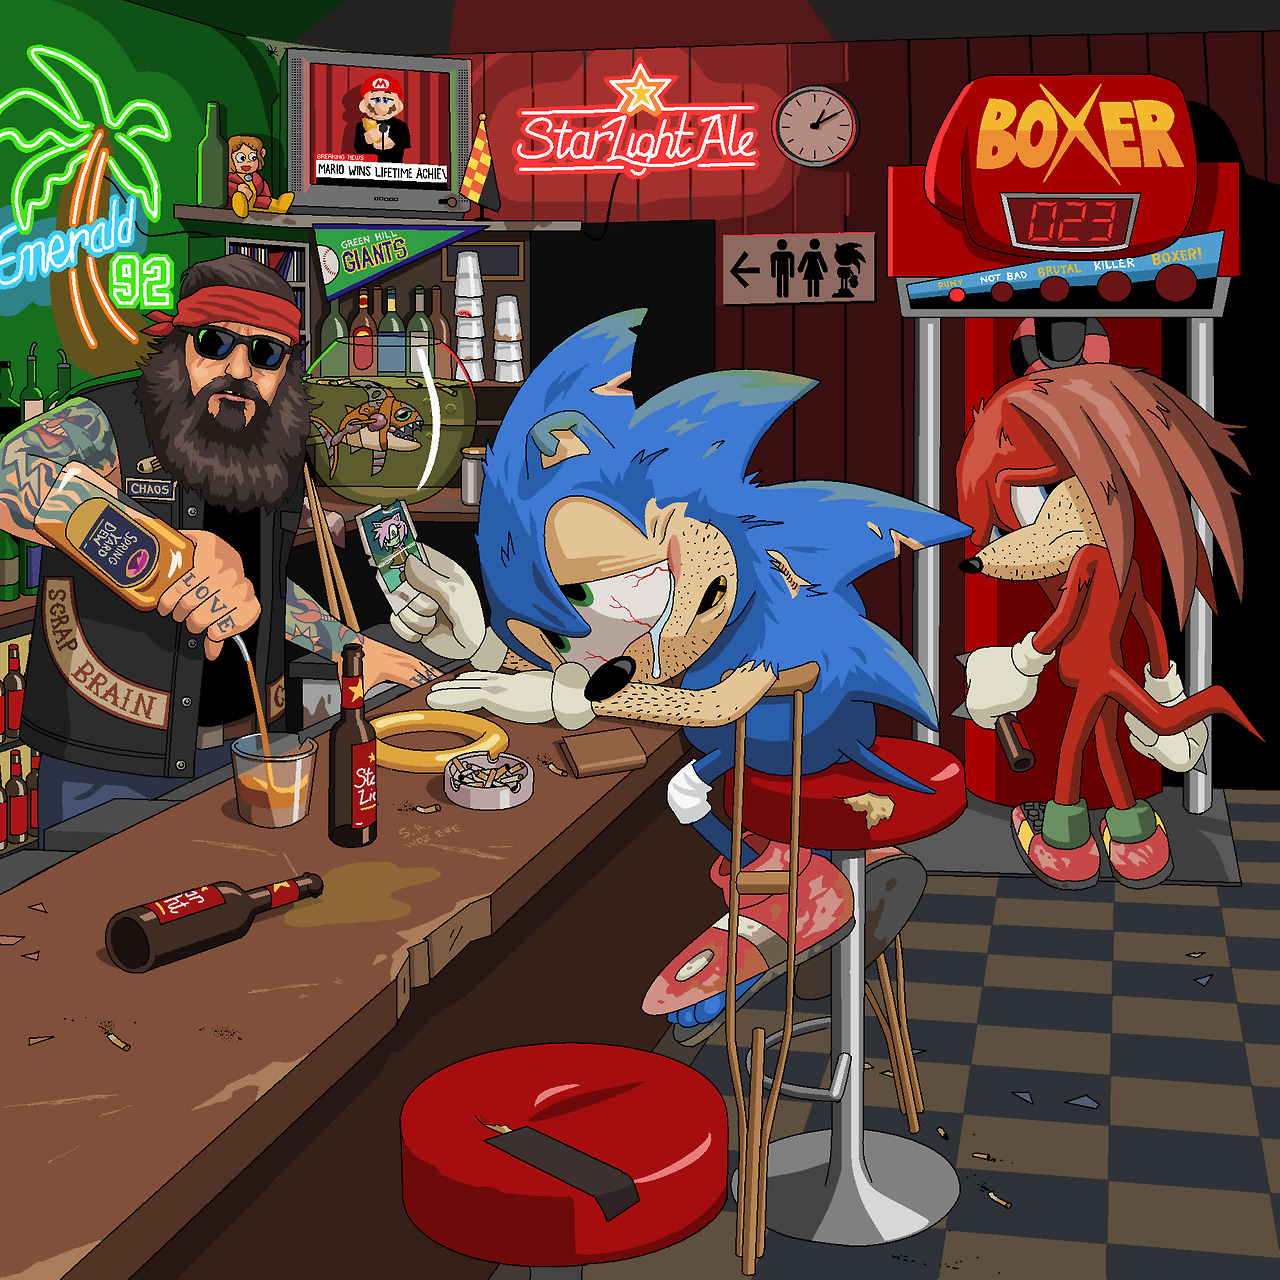 A bitter, washed up Sonic the Hedgehog by Jim'll Paint It